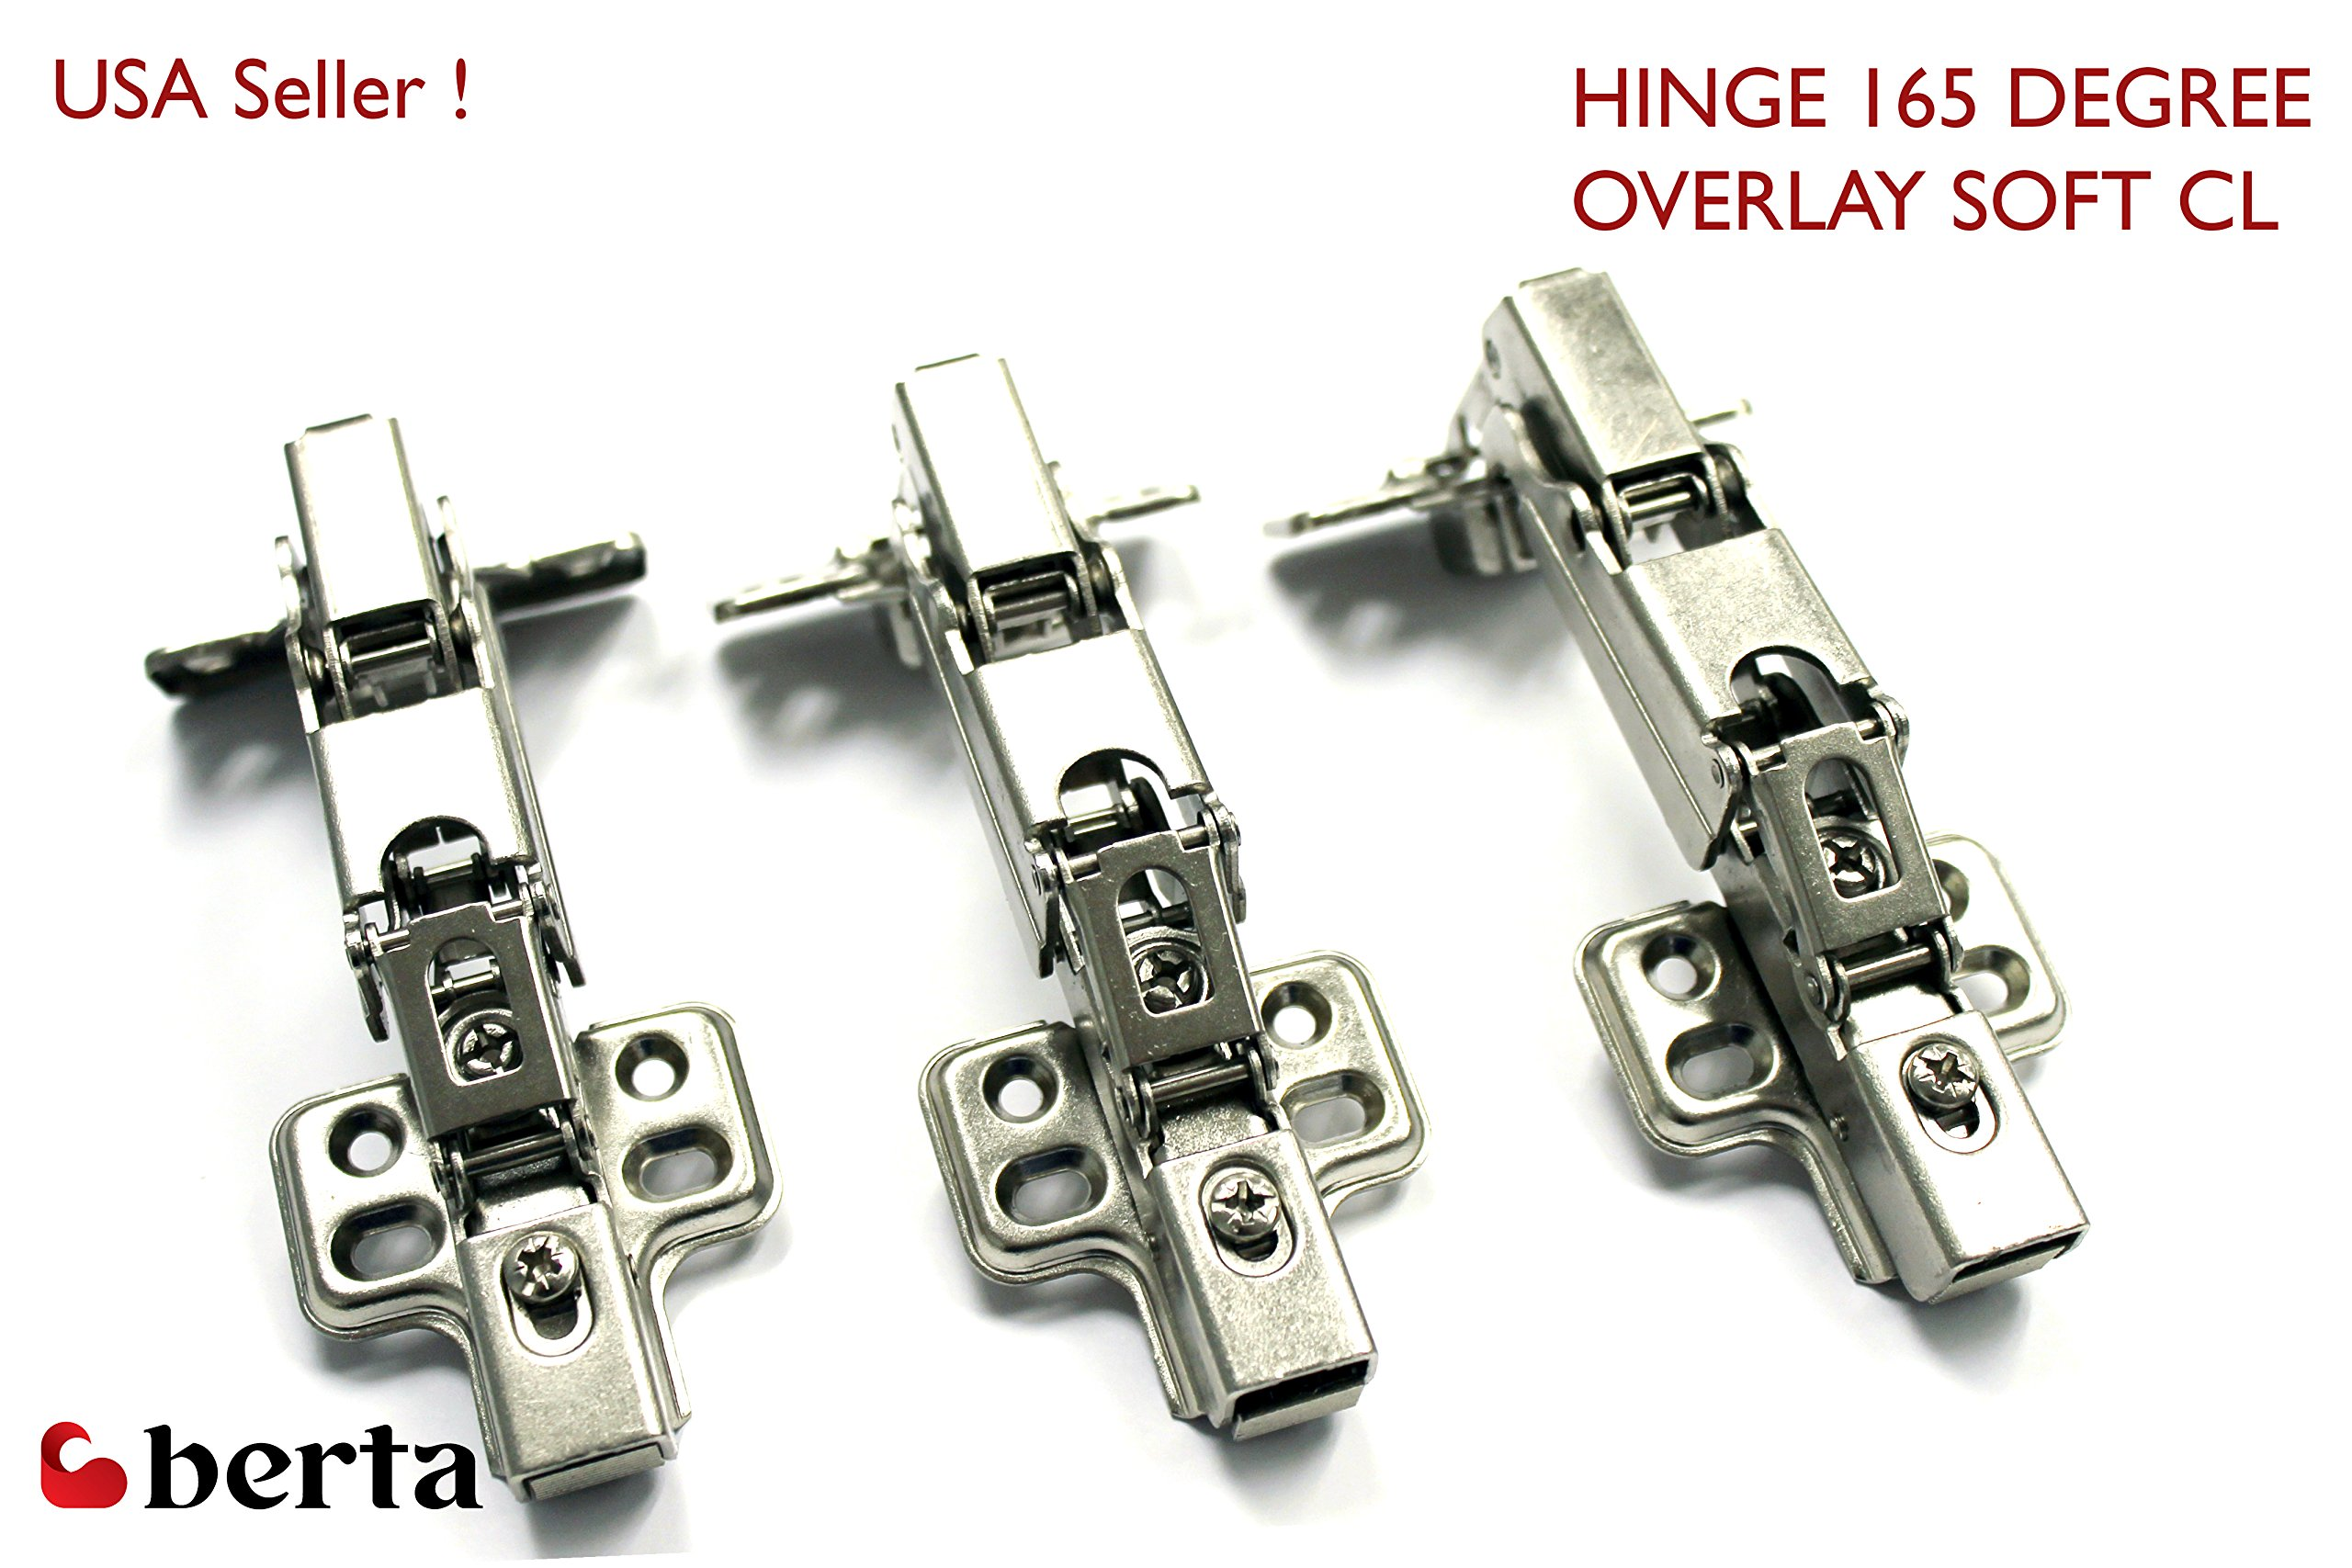 100 Pack Berta Concealed Kitchen Cabinet Door Hinge 165 Degree Soft / Self Closing Frameless Mounting Full Overlay